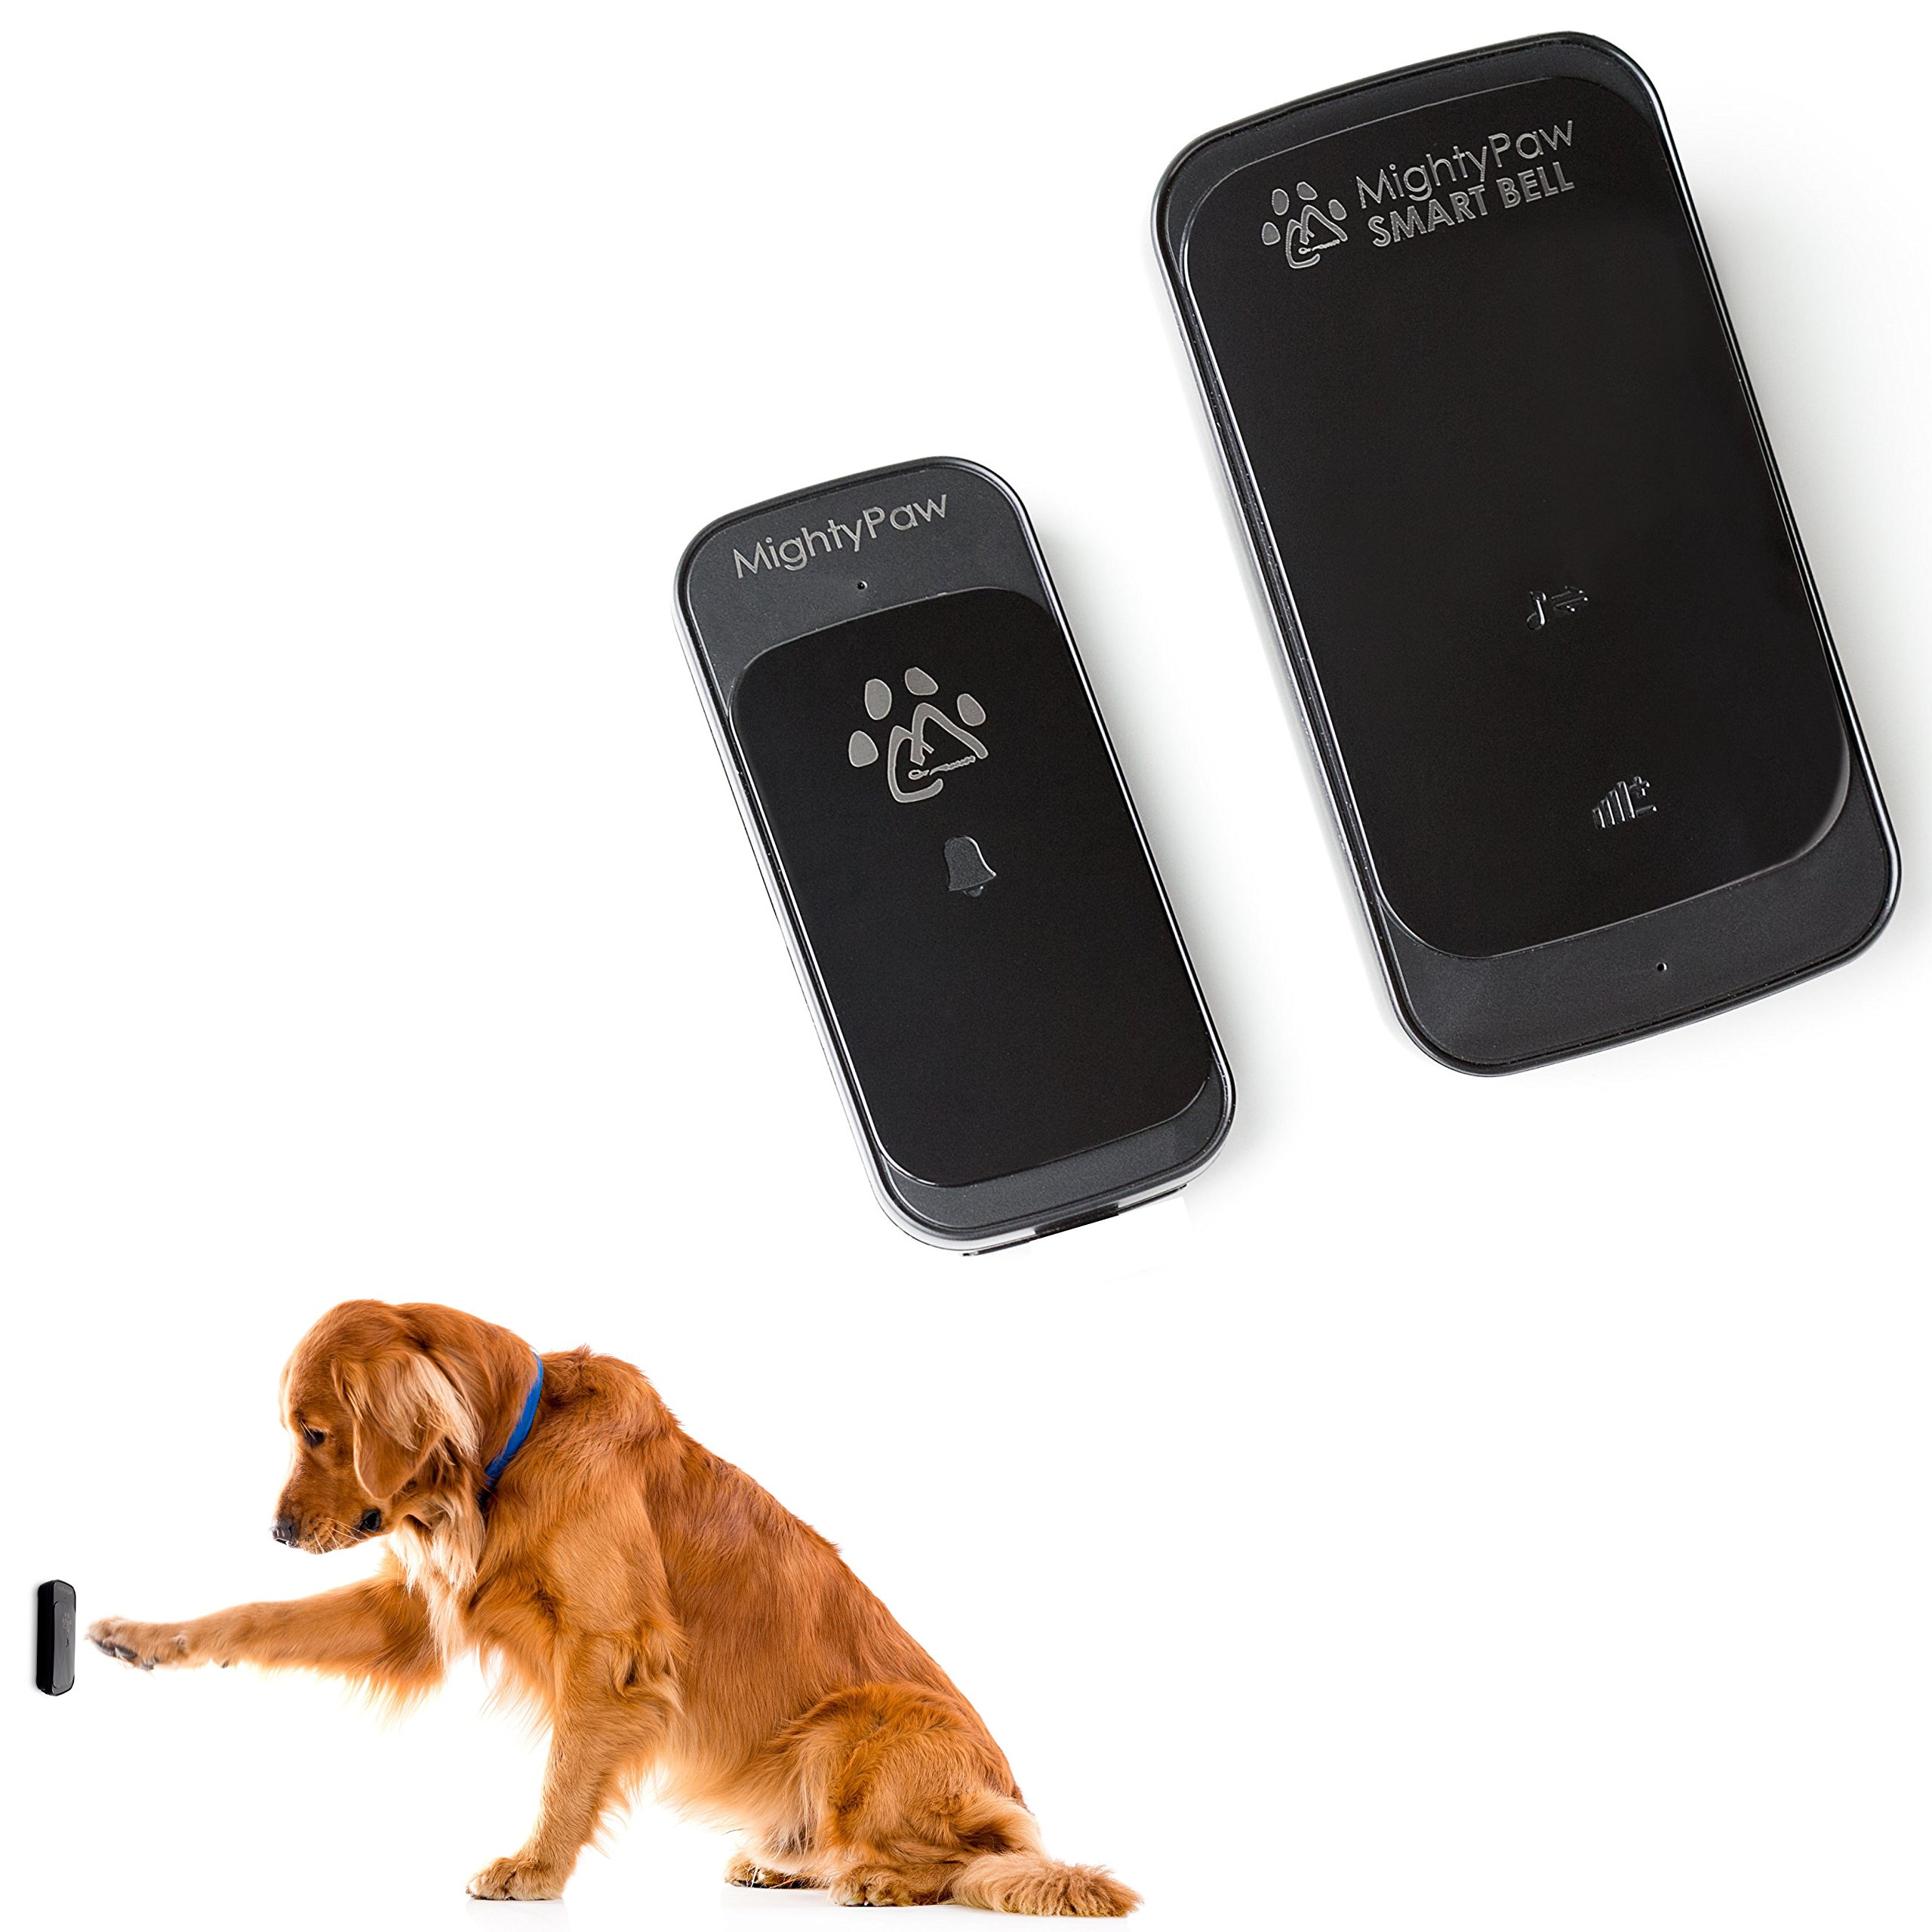 Mighty Paw Smart Bell, Wireless Dog Doorbell, Potty Bell for Dogs, Waterproof with Touch Pad Sensor. Includes Free Training Guide (Black, 1 Transmitter)... by Mighty Paw